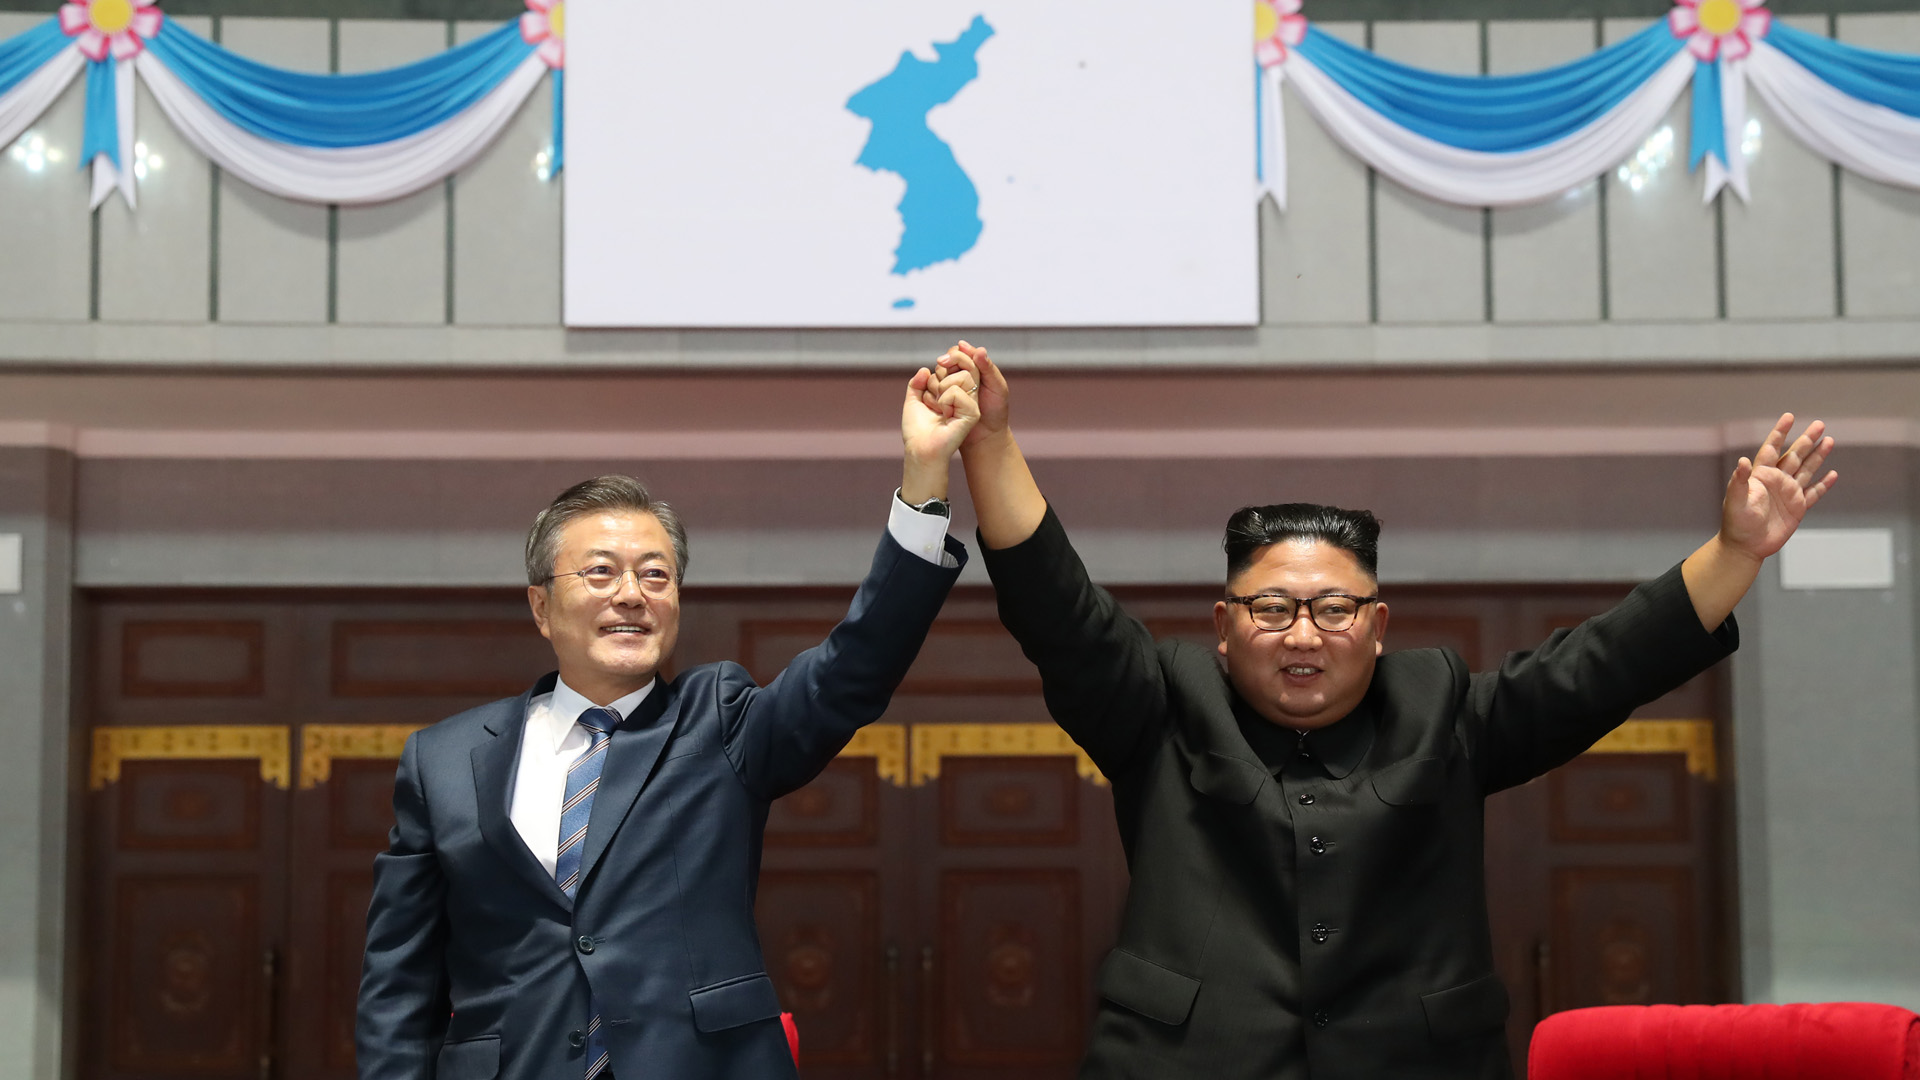 North Korean leader Kim Jong Un (R) and South Korean President Moon Jae-in (L) gesture as they watch the gymnastic and artistic performance at the May Day Stadium on September 19, 2018 in Pyongyang, North Korea. (Credit: Pyeongyang Press Corps/Pool/Getty Images)